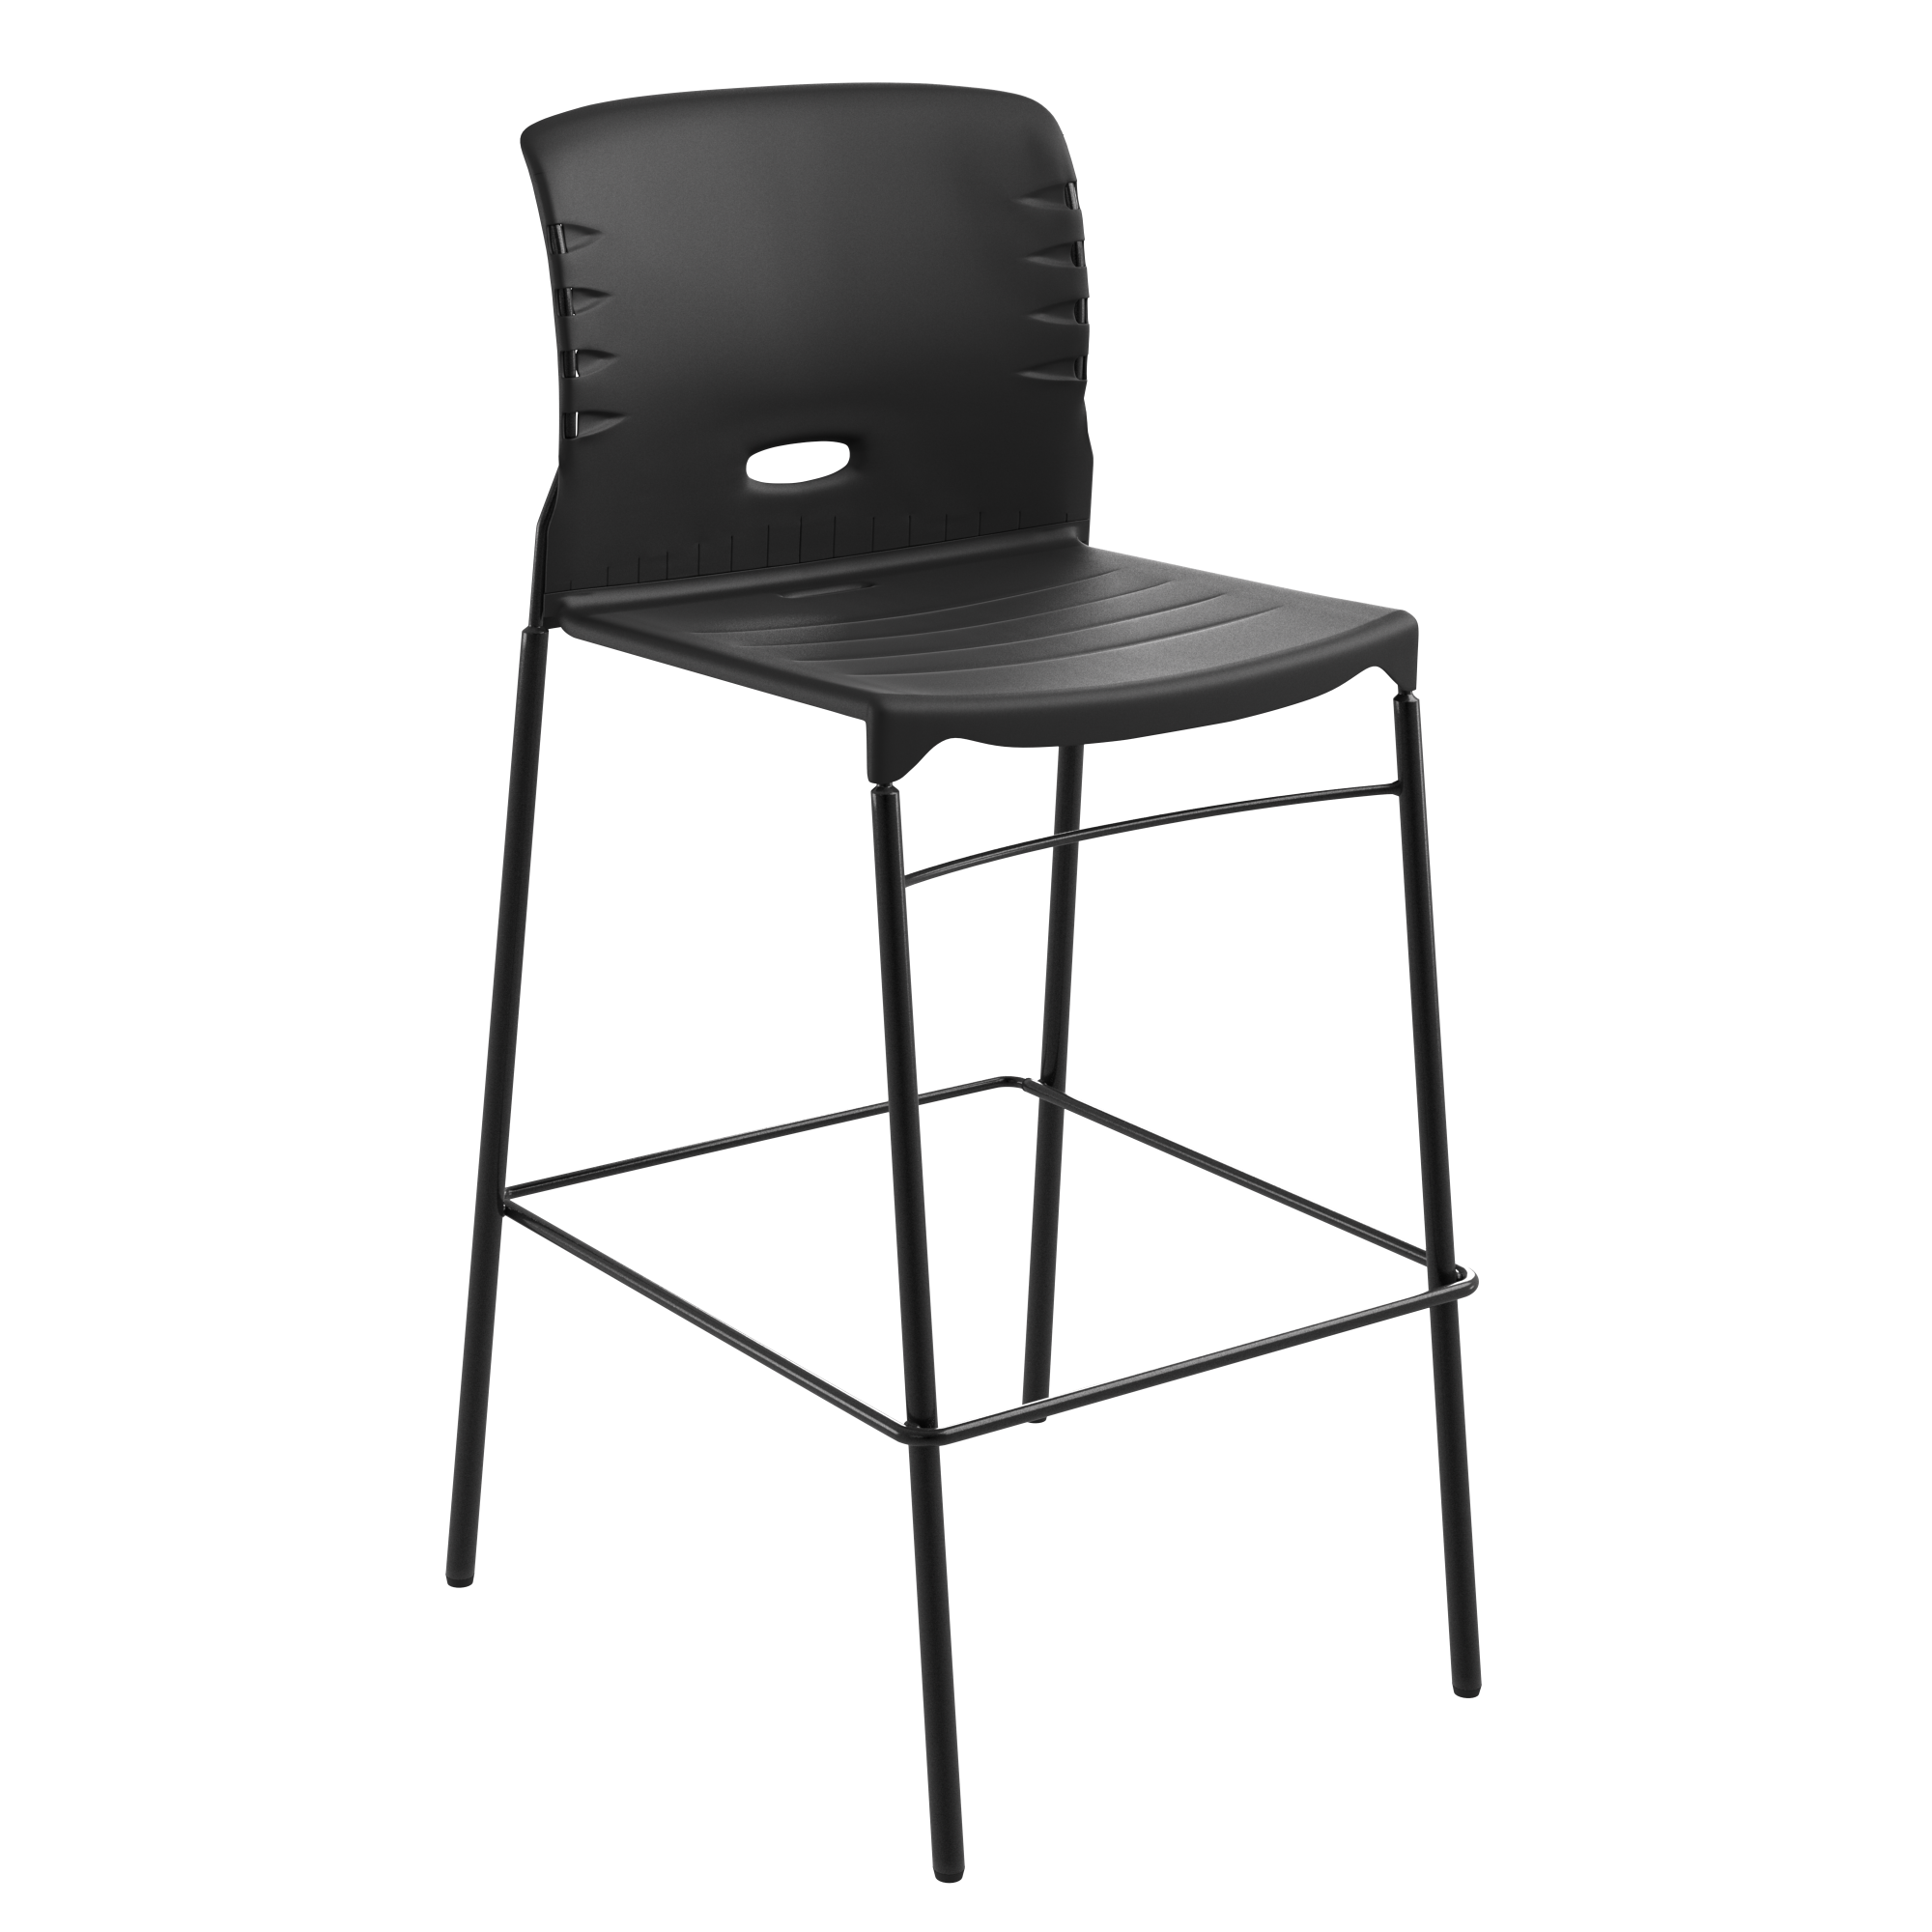 tall stackable chair for sale Wisconsin